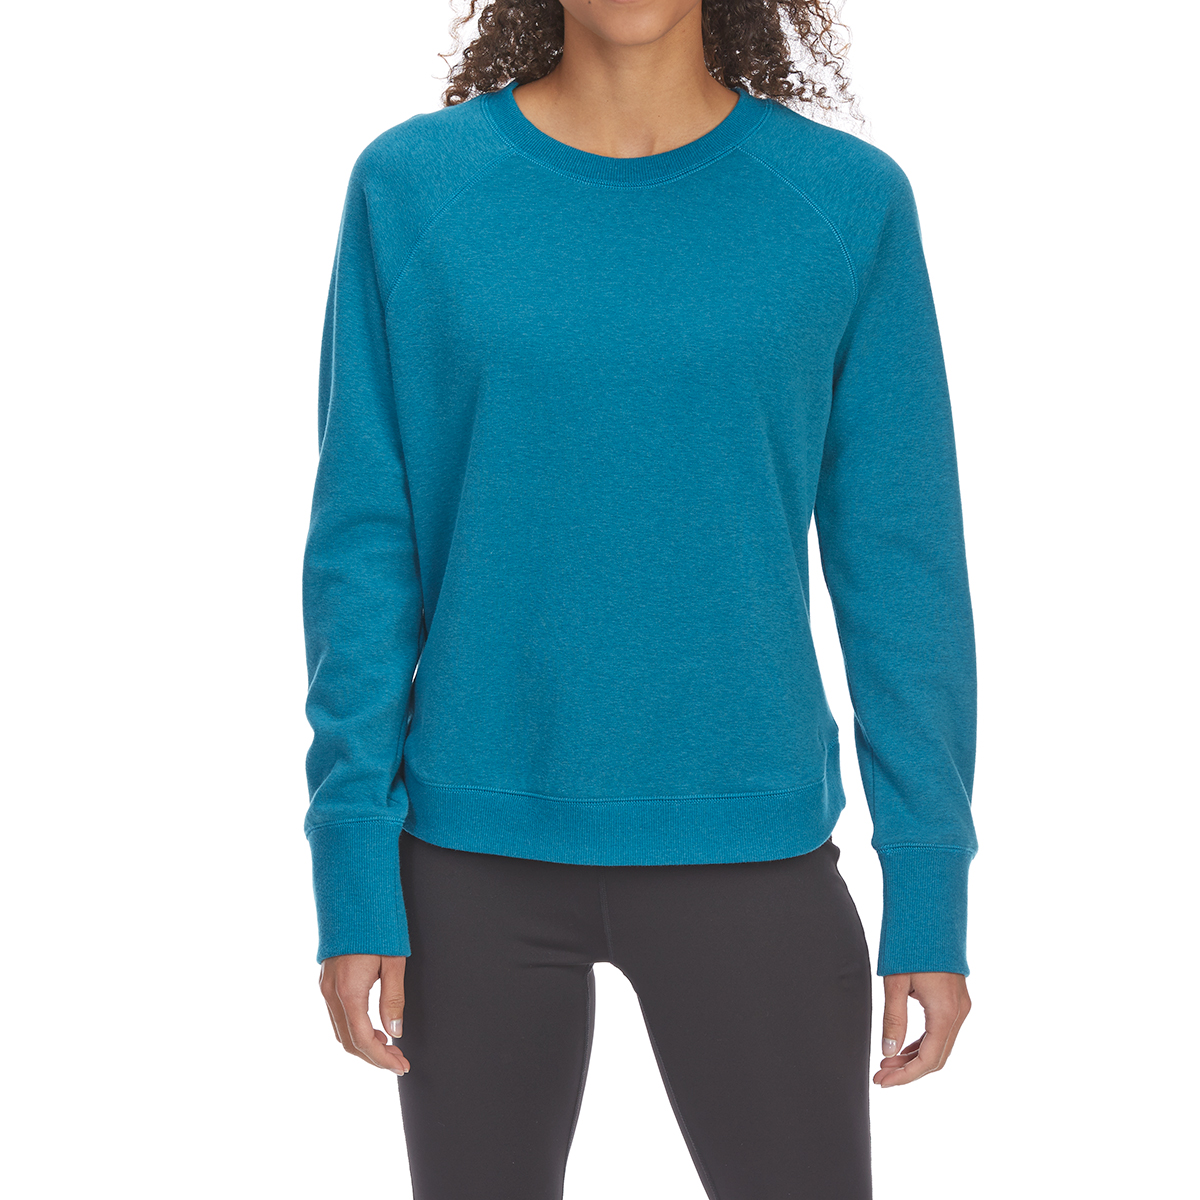 Ems Women's Canyon Knit Pullover - Green, XL